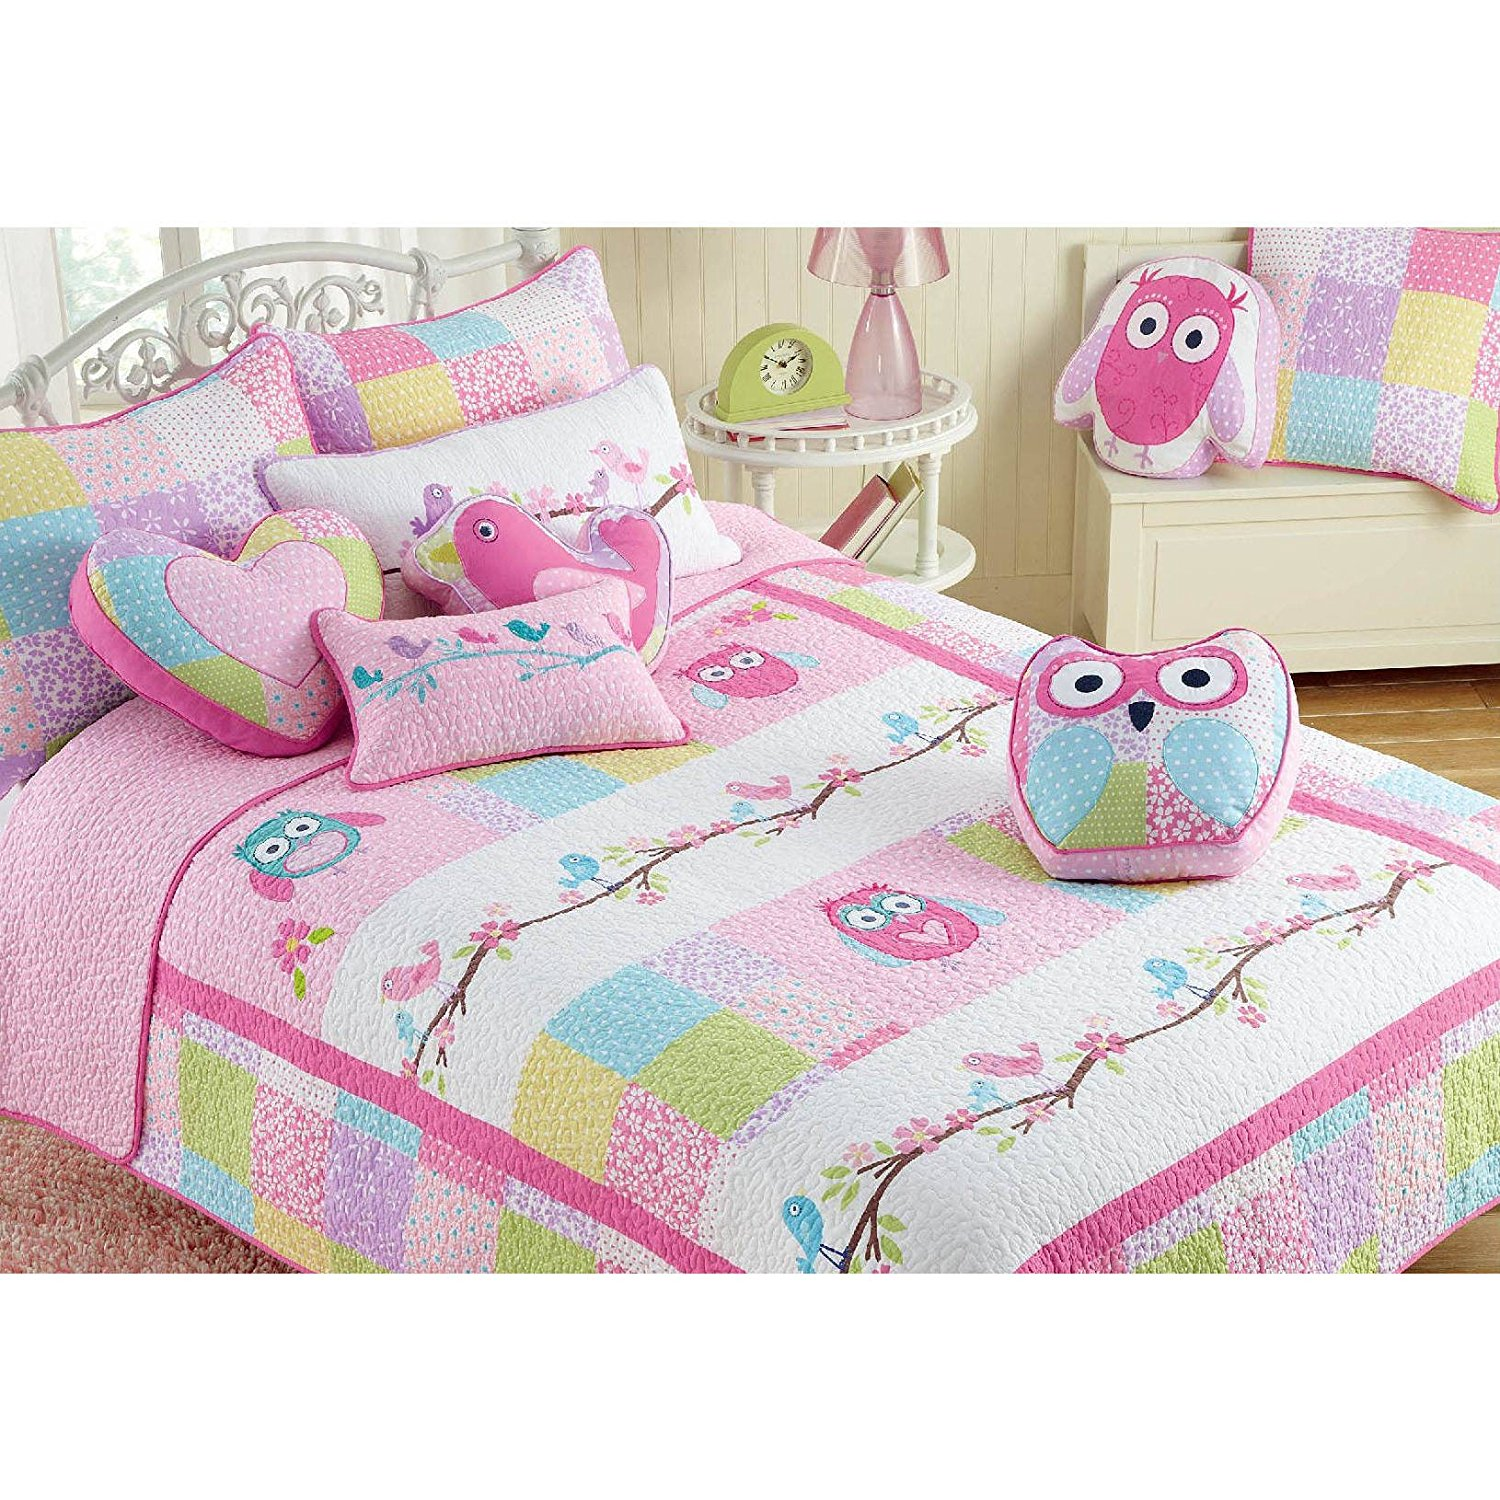 2 Piece Kids Girls Pink Owl Theme Twin Quilt Set, Adorable Animal Print Bedding, Nocturnal Birds Pink White Green Floral Pattern Flowers Horizontal Stripes Dancing Owls Contemporary, Polyester